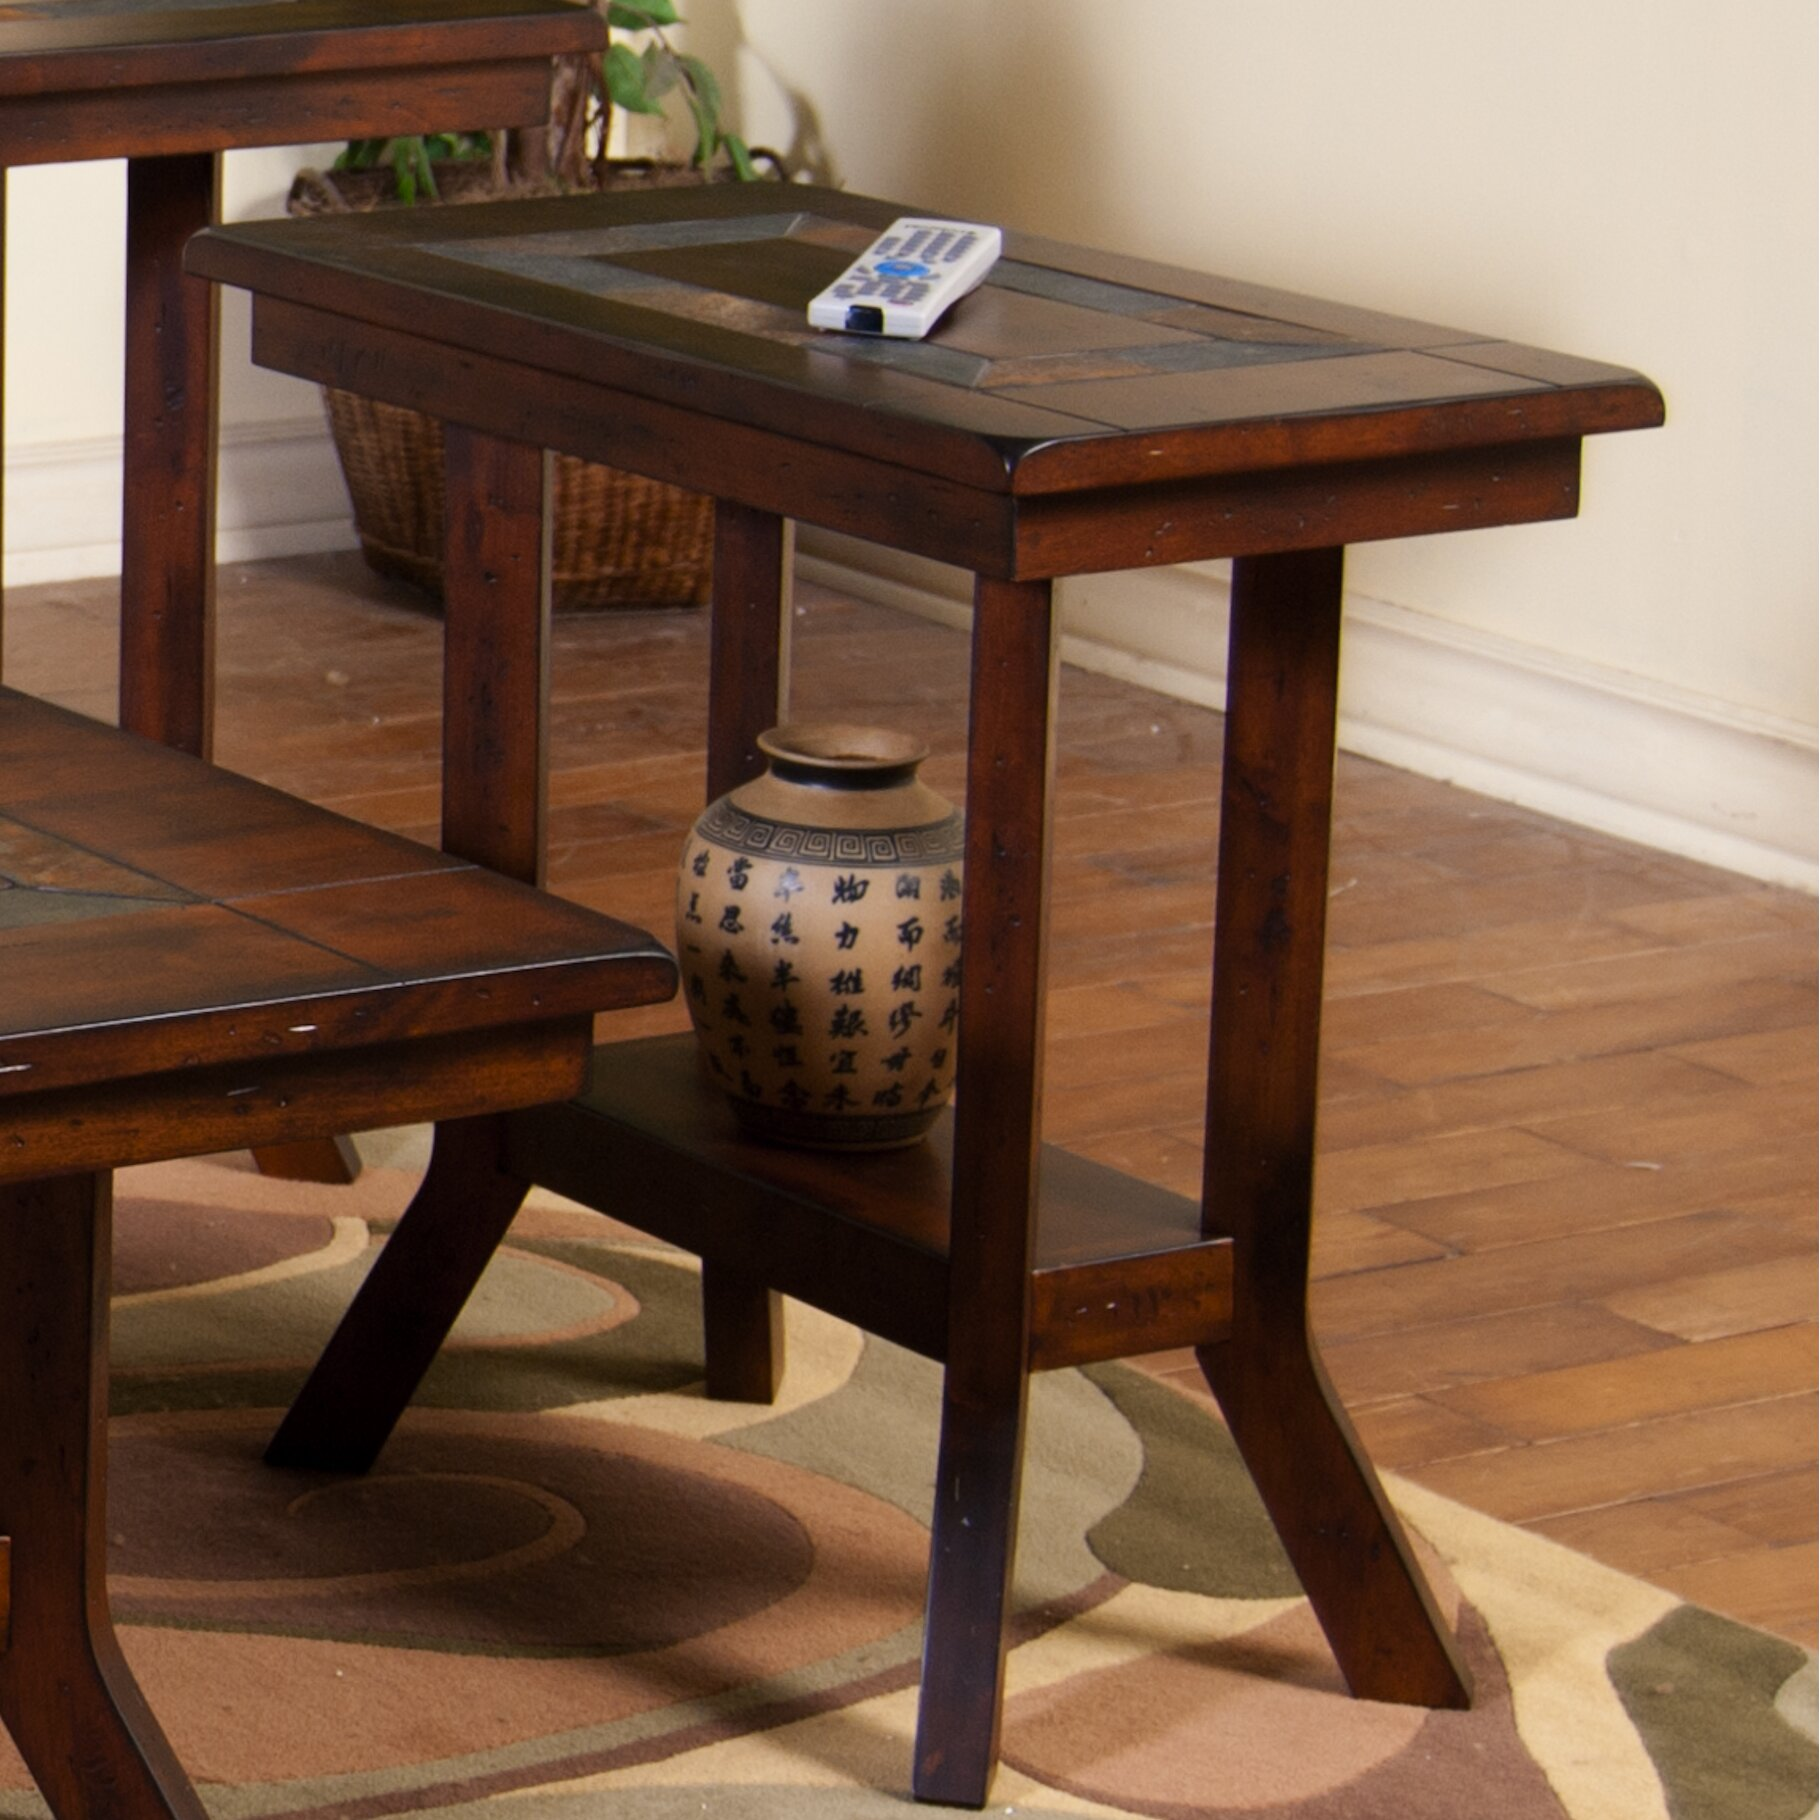 Sunny Designs Santa Fe Coffee Table Set & Reviews